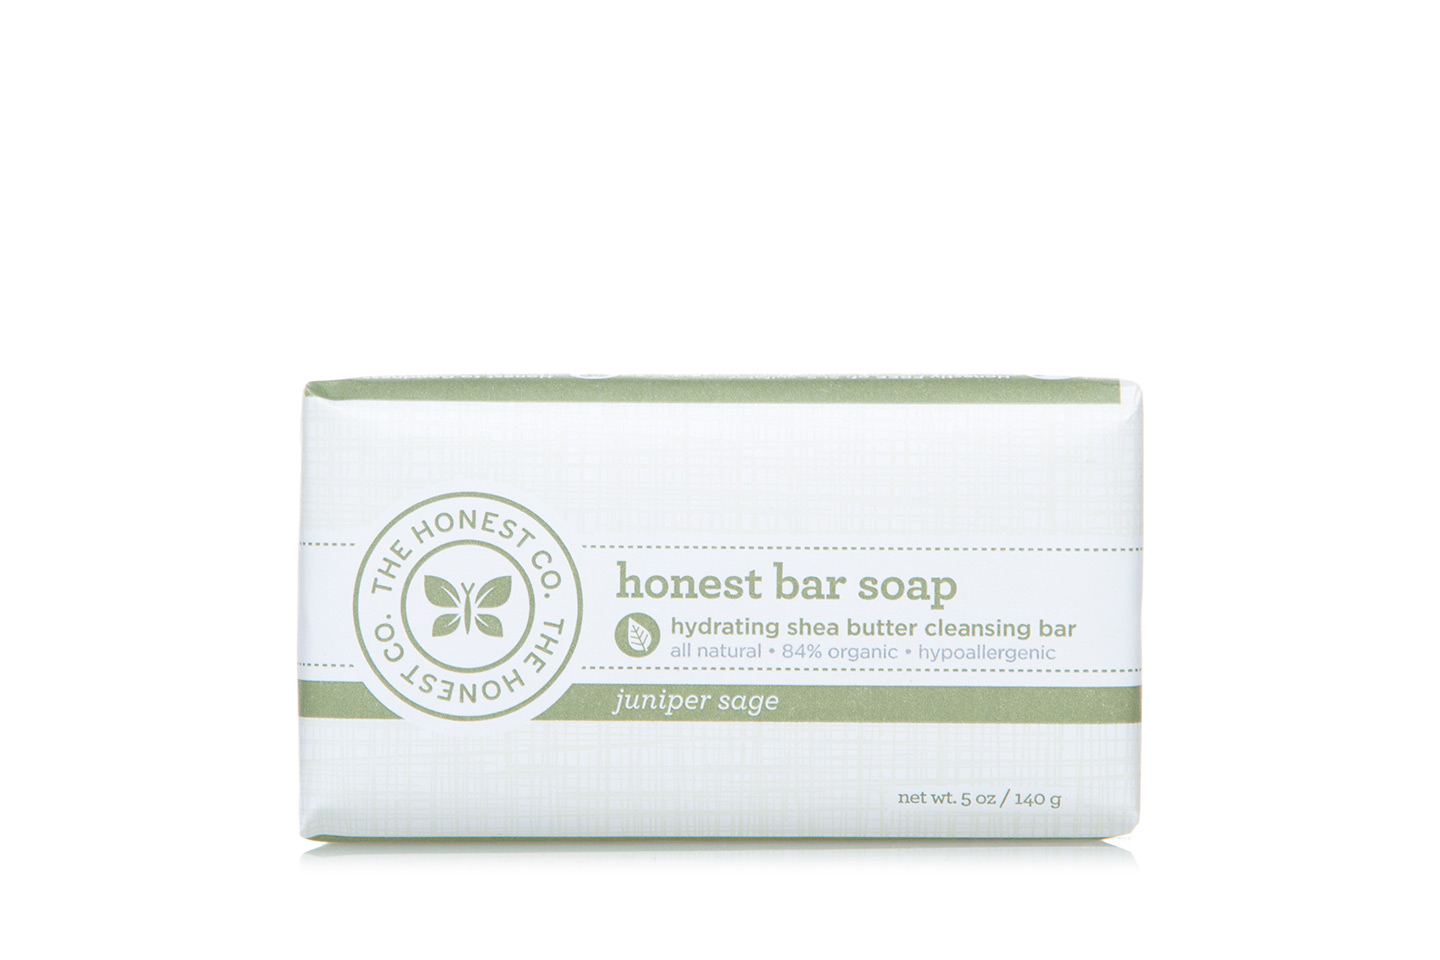 The Honest Company Hydrating Shea Butter Cleansing Bar